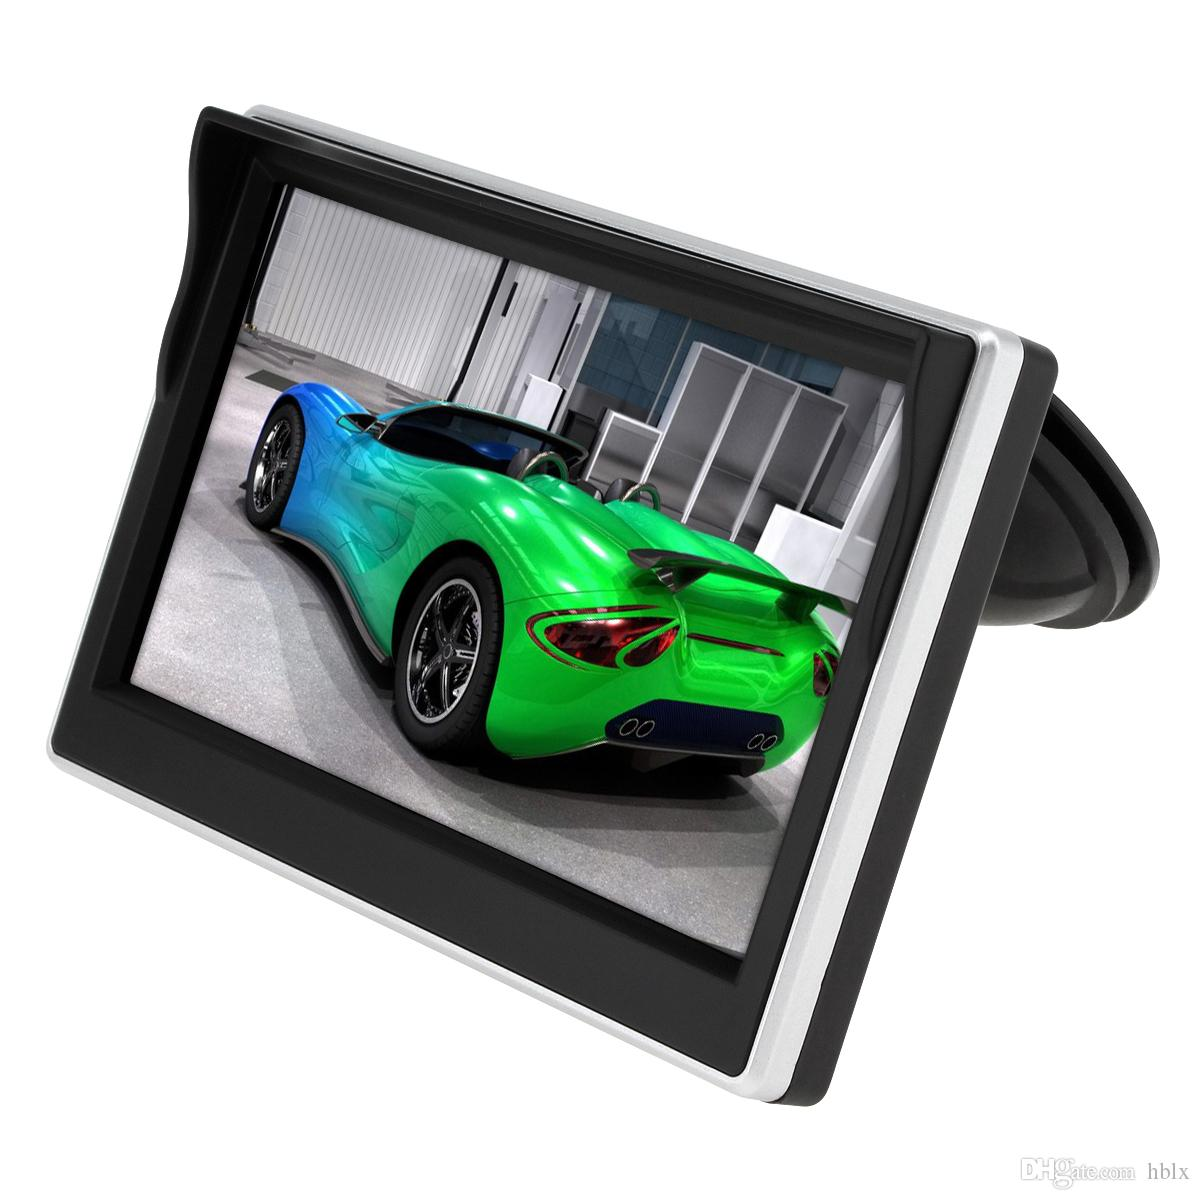 5 Inch Car TFT LCD Monitor 800*480 Screen 2 Way Video Input For Rear View Backup Reverse Camera DVD VCD CMO_30A